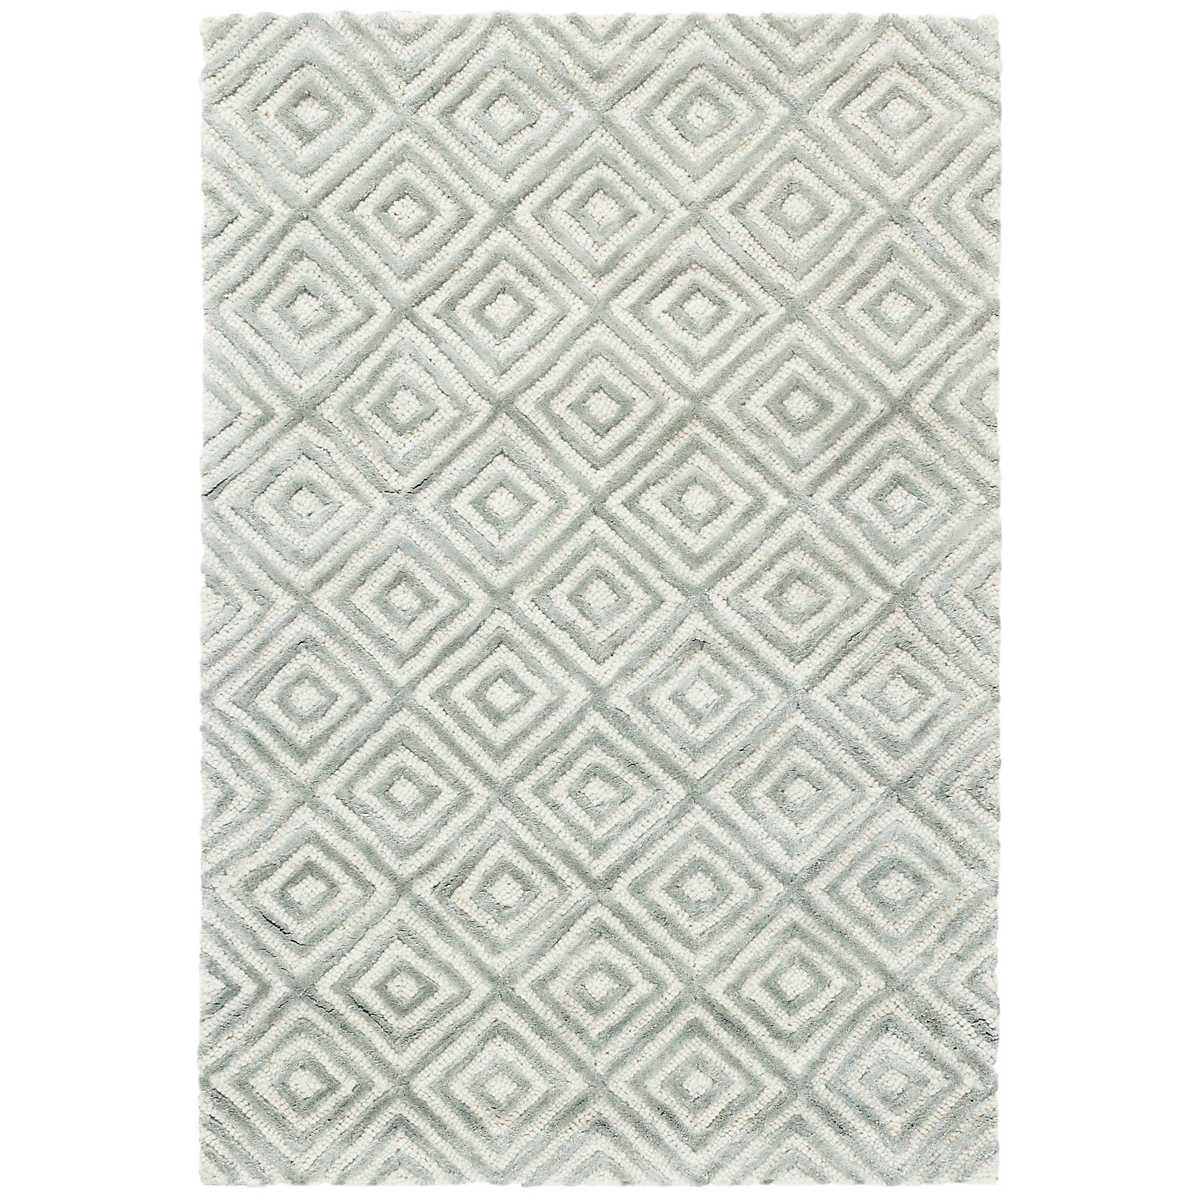 Cut Diamond Ocean Tufted Wool Viscose Rug Dash Amp Albert